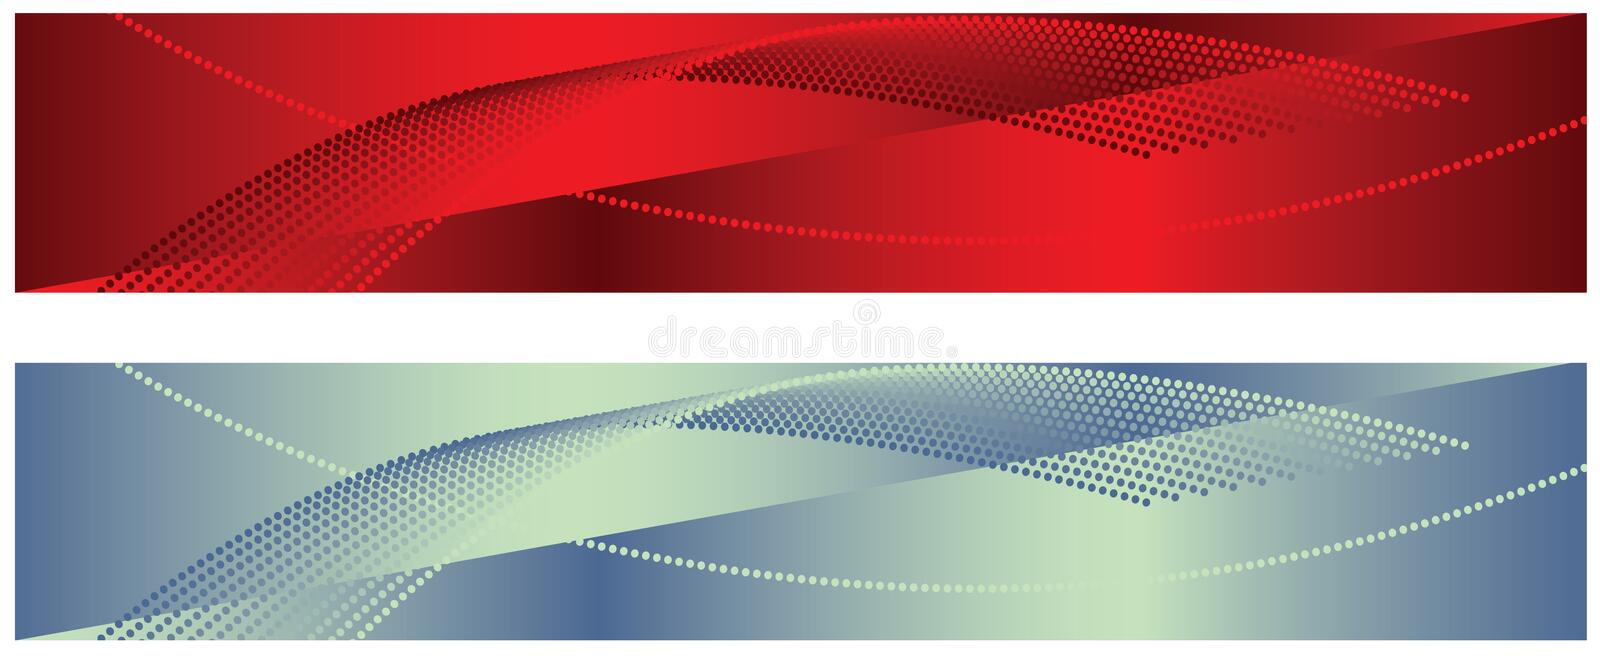 Red and white backgrounds stock photos